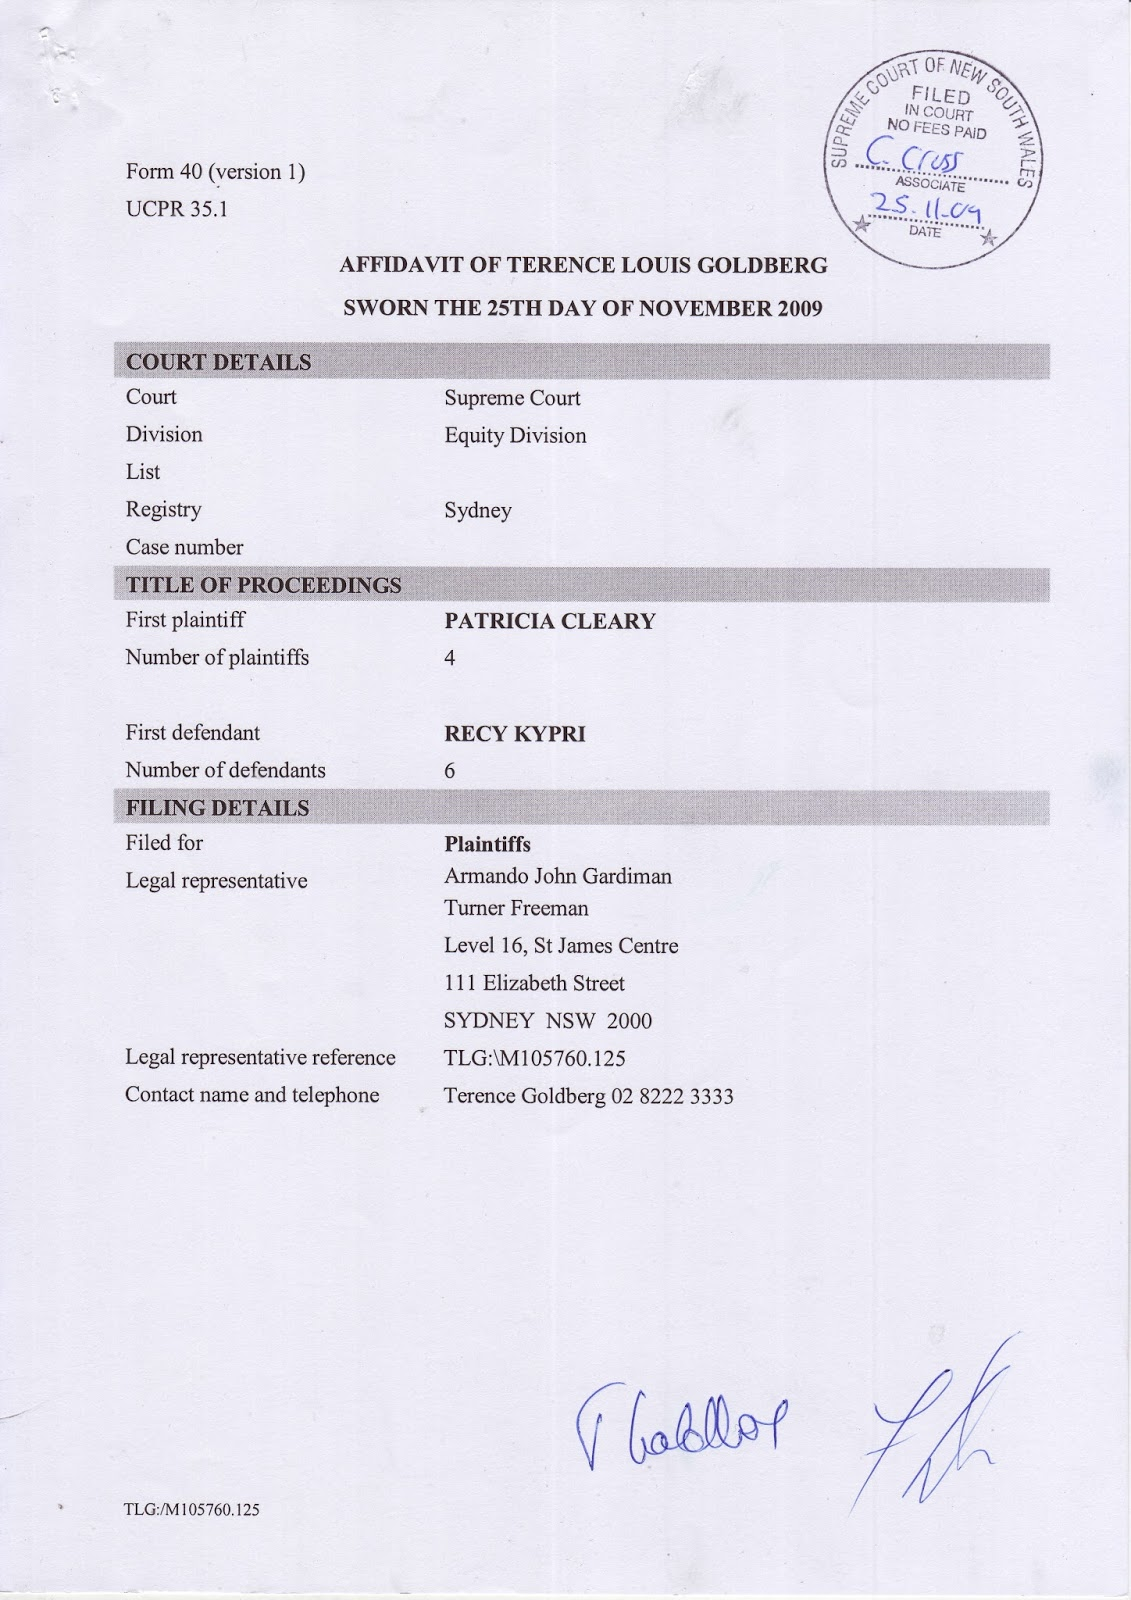 Terence Goldberg's sworn affidavit of 25 November 2009